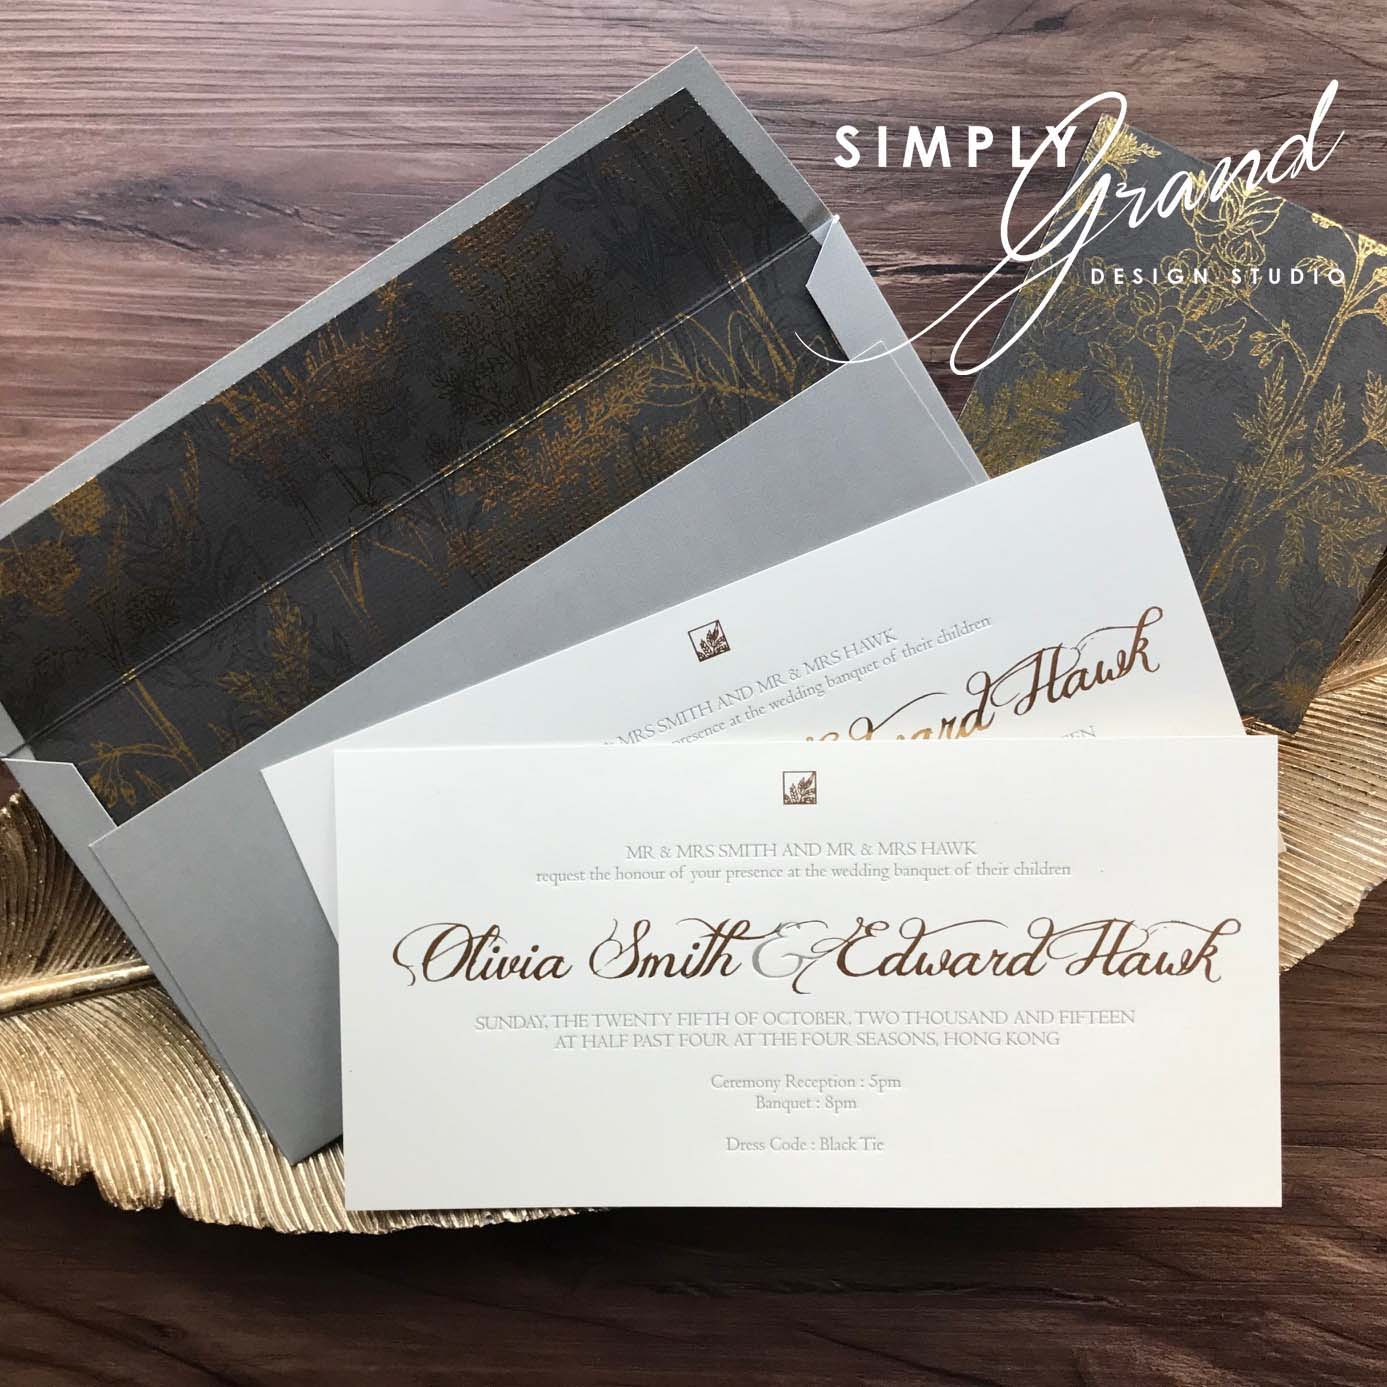 Simply_Grand_Production_Stationery_Invitation_Card_3_1